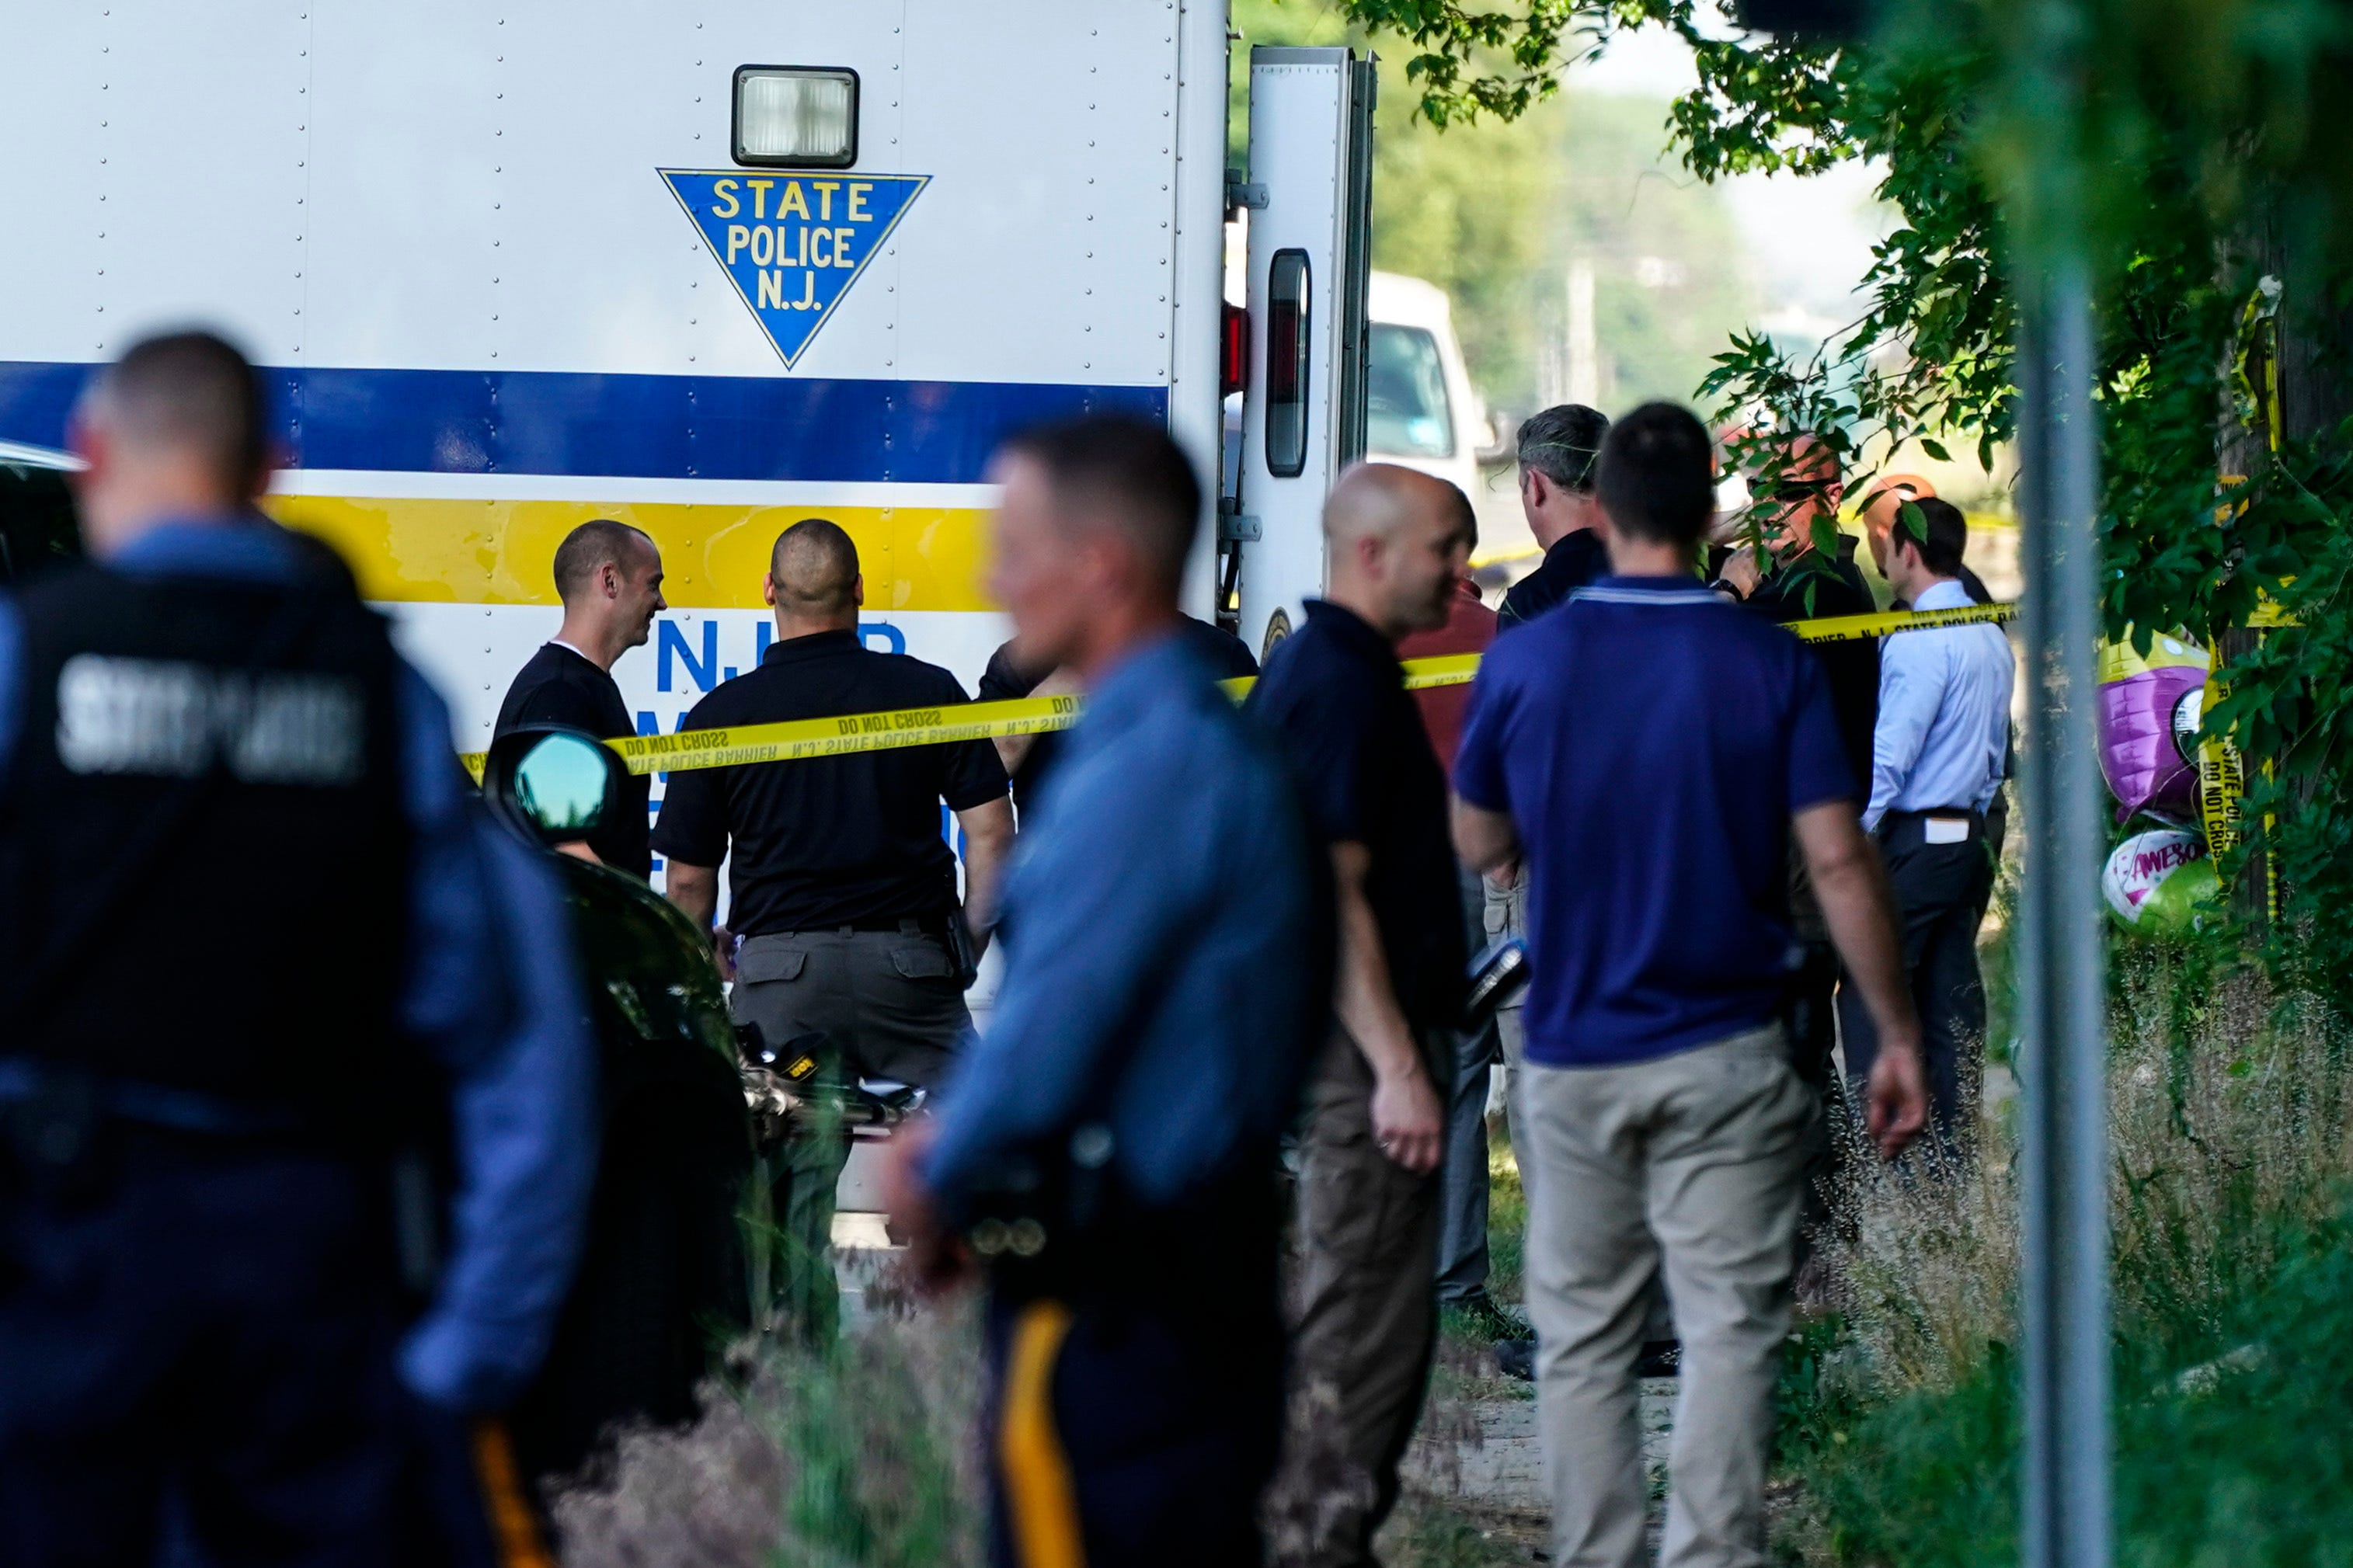 2 dead, 12 injured in shooting at New Jersey house party 2